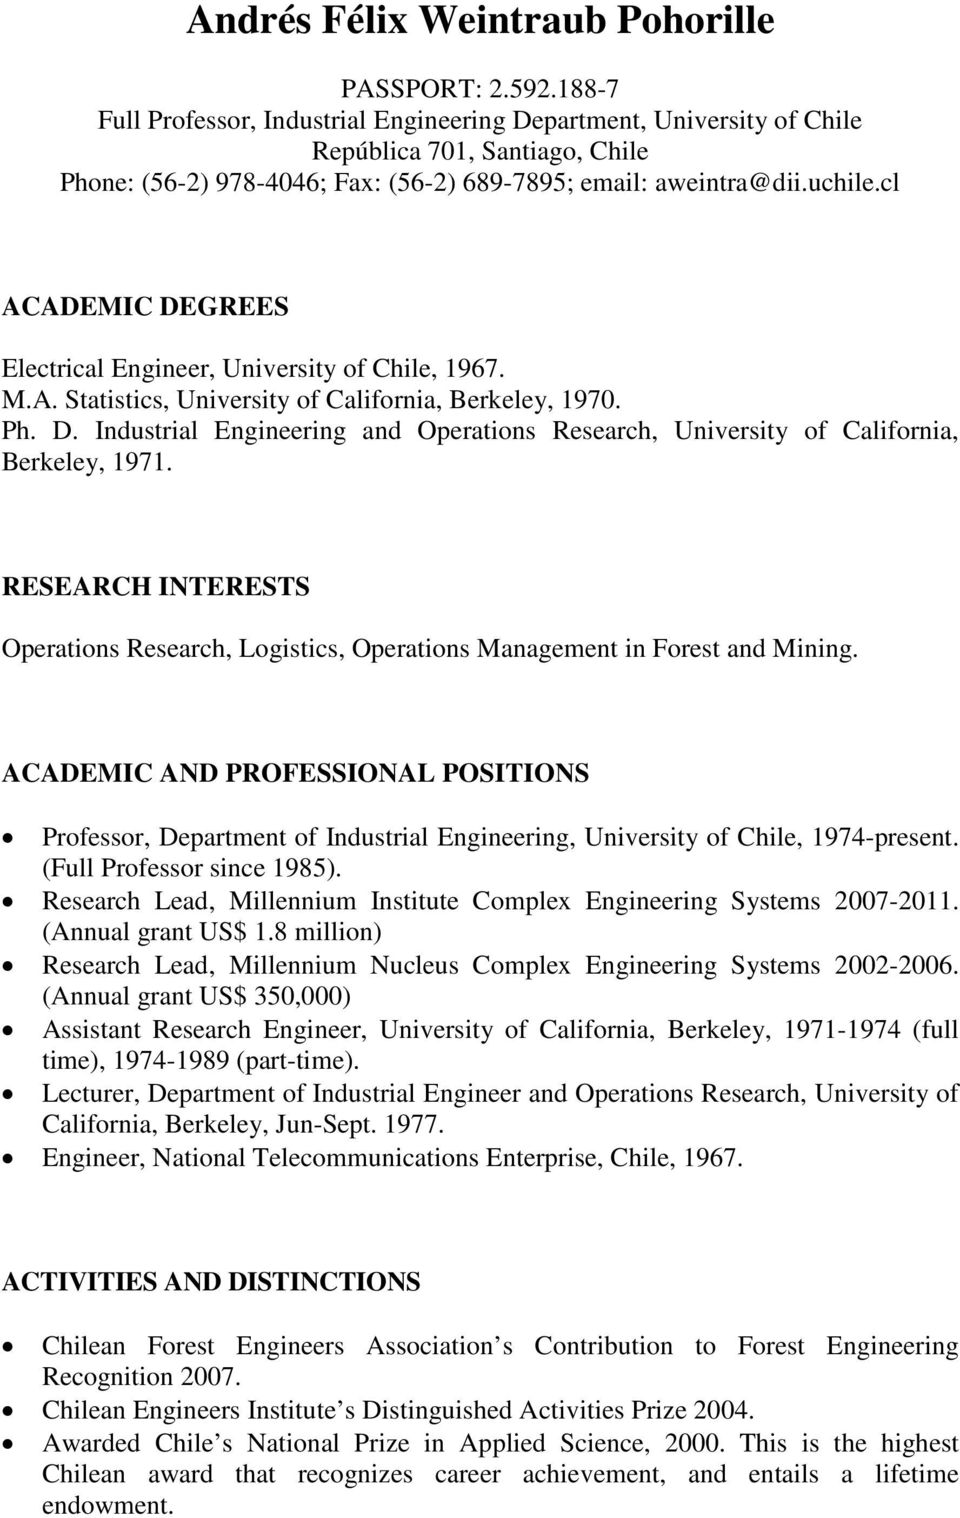 cl ACADEMIC DEGREES Electrical Engineer, University of Chile, 1967. M.A. Statistics, University of California, Berkeley, 1970. Ph. D. Industrial Engineering and Operations Research, University of California, Berkeley, 1971.